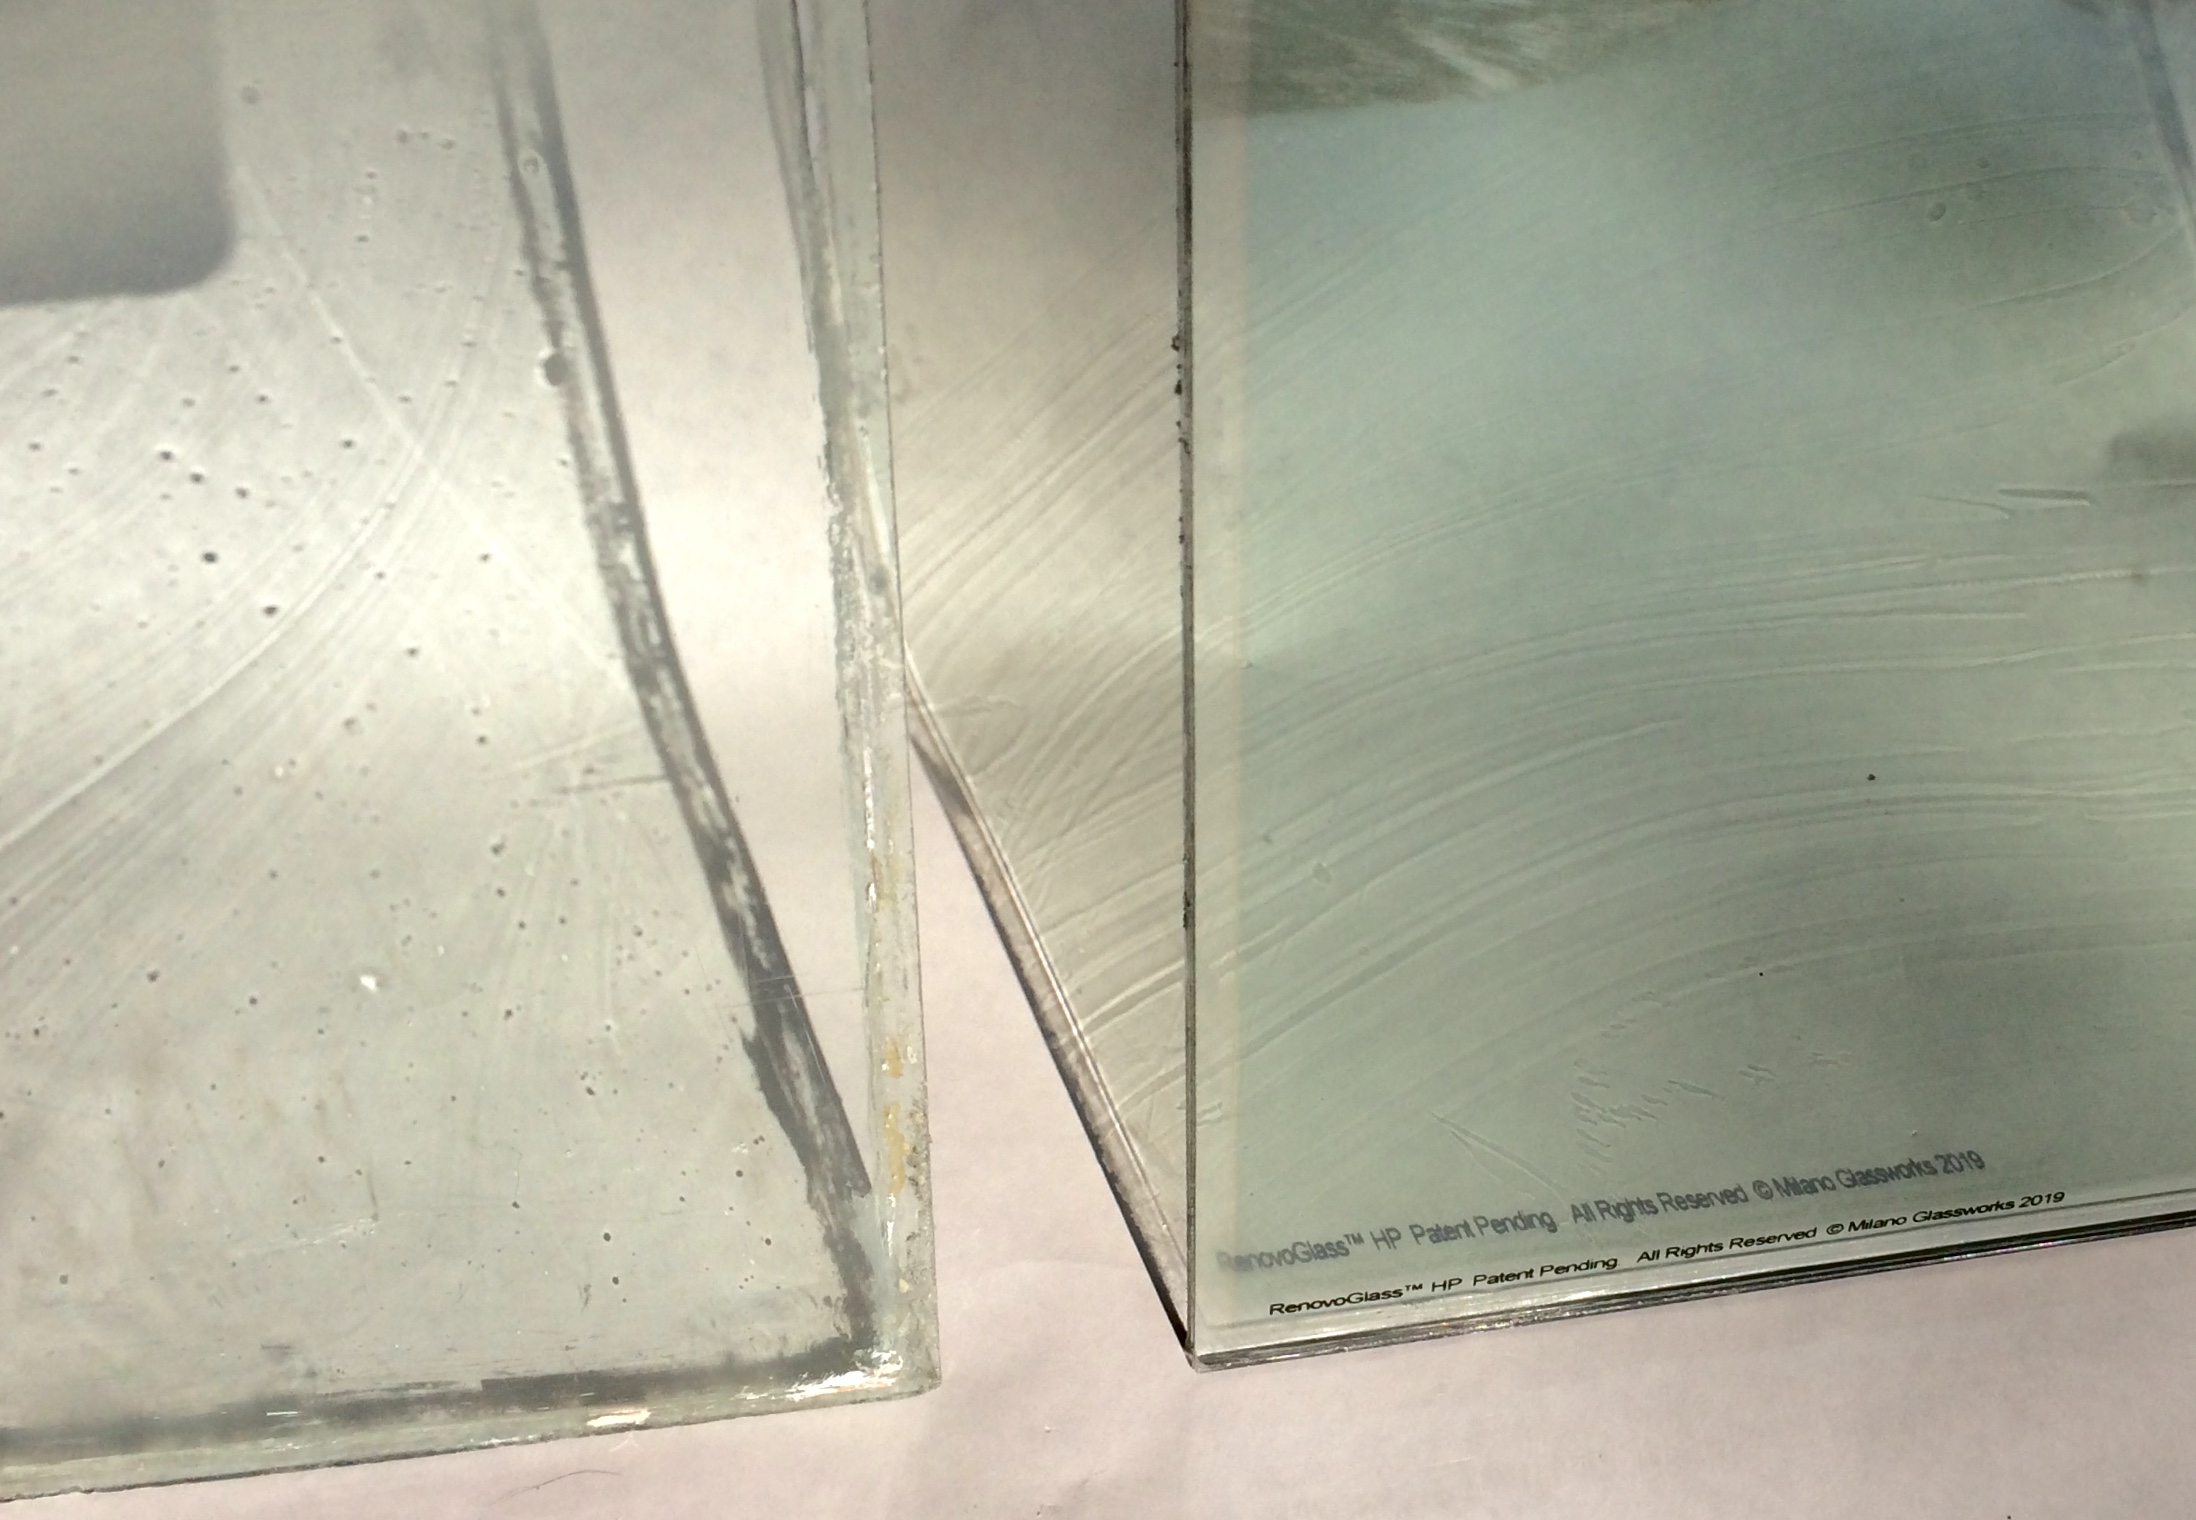 RenovoGlass™ HP (High Performance). This example illustrates a custom high performance restoration glass next to an original C1870 historic glass. Using natural light to project the subtle surface striation allows you to see exactly the nuance of our progressive historic glass products. The historic glass has many pits from over 140 years of exposure to the elements.